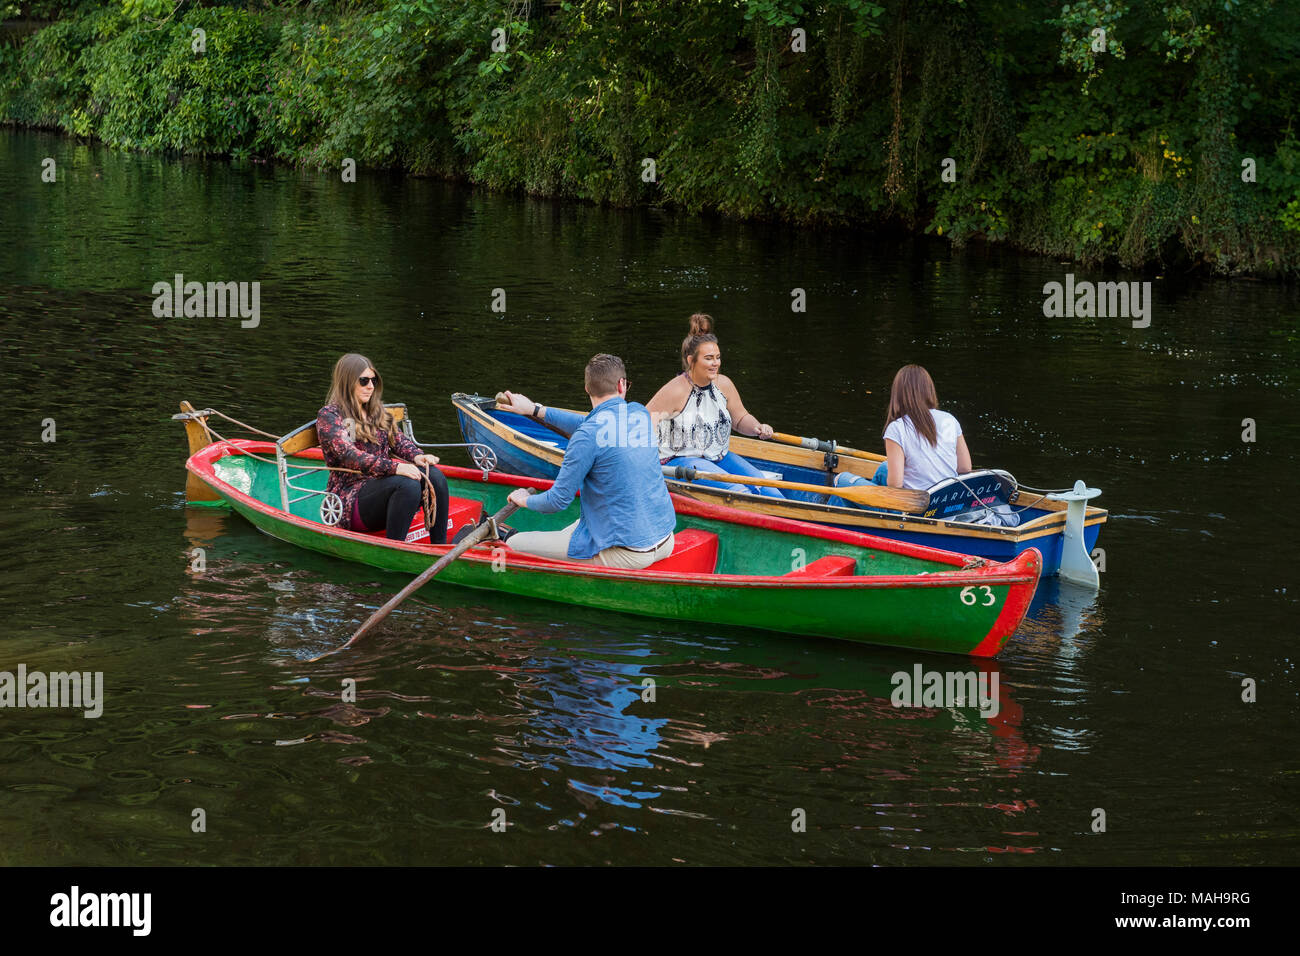 4 people boating in pairs, relaxing & having fun in 2 rowing boats side by side & about to collide - River Nidd in summer, Knaresborough, England, UK. - Stock Image